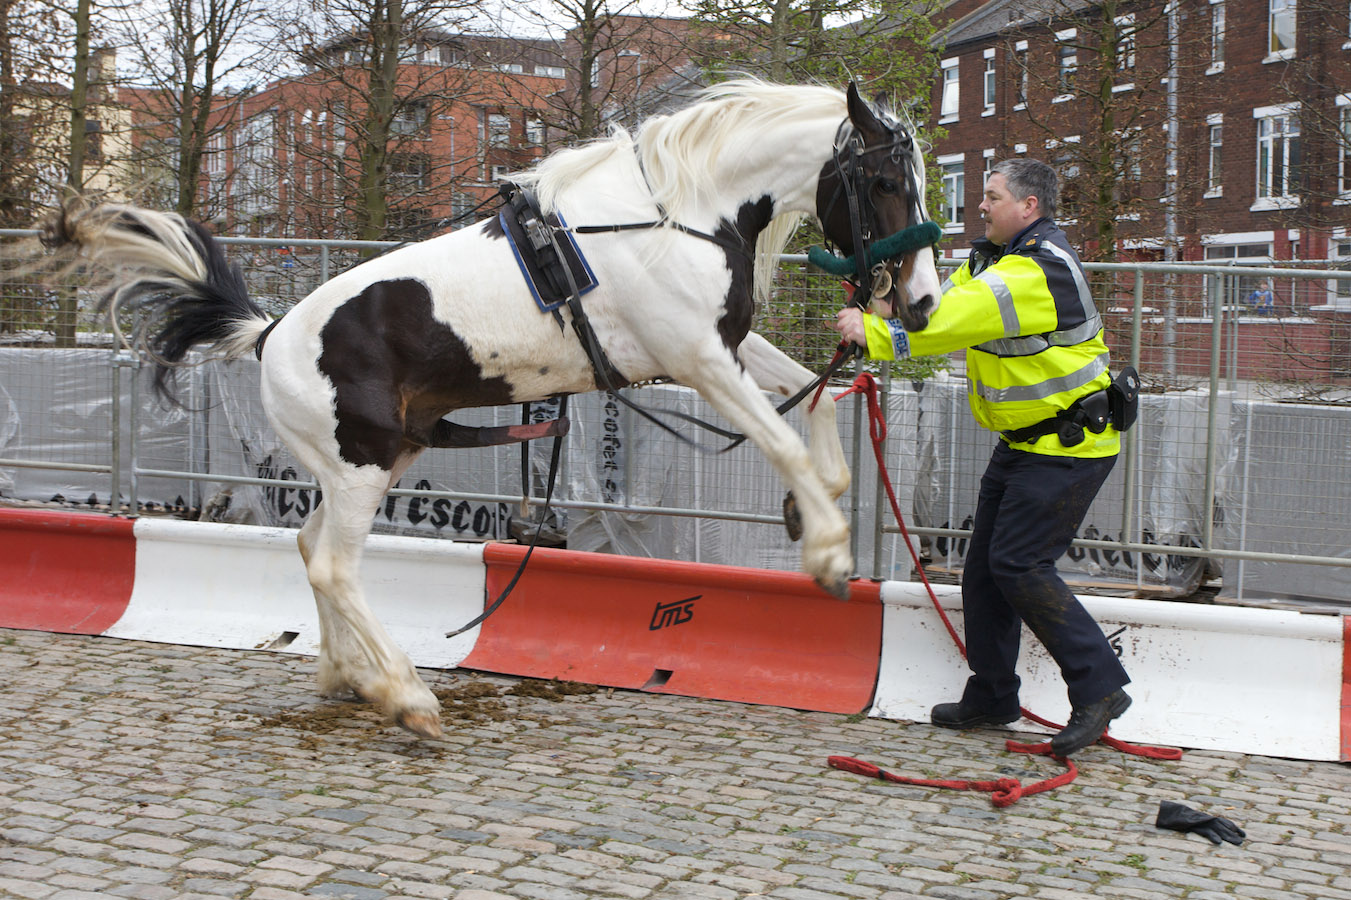 Horse mounts Policeman [THE VIDEO] The Poke